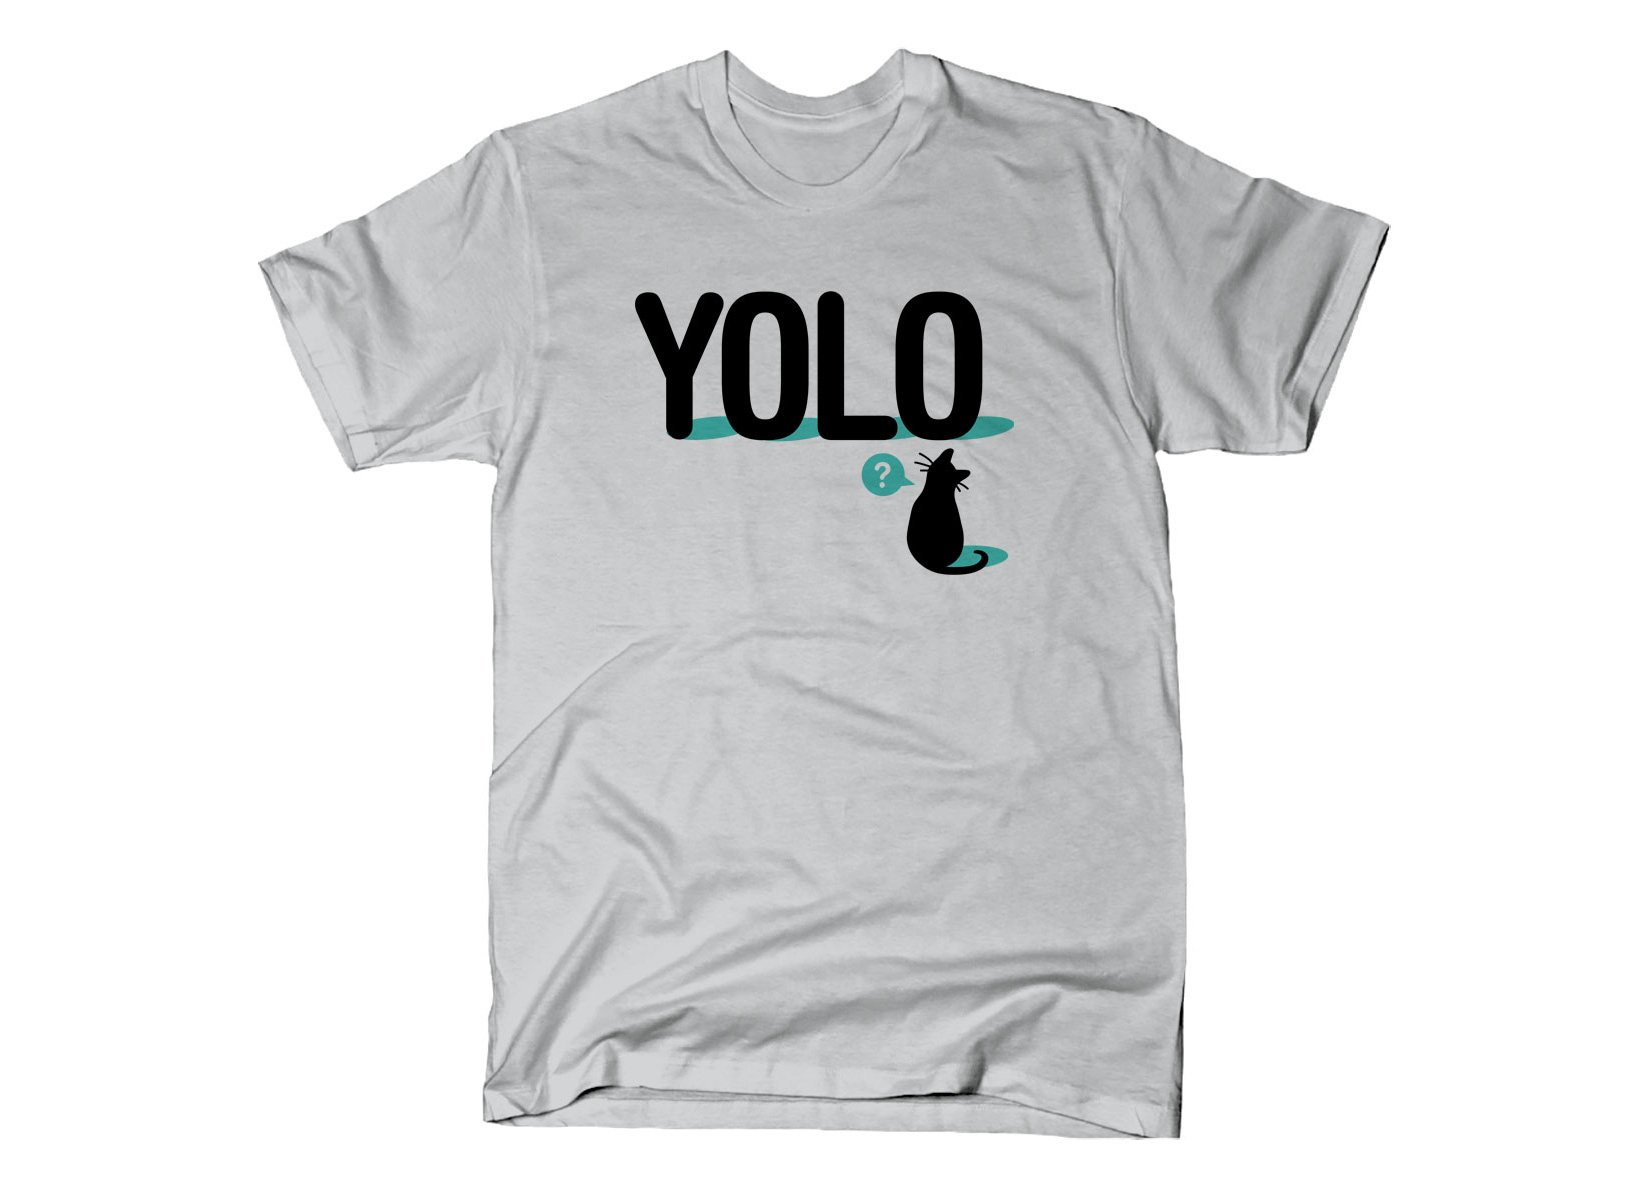 YOLO Cat on Mens T-Shirt